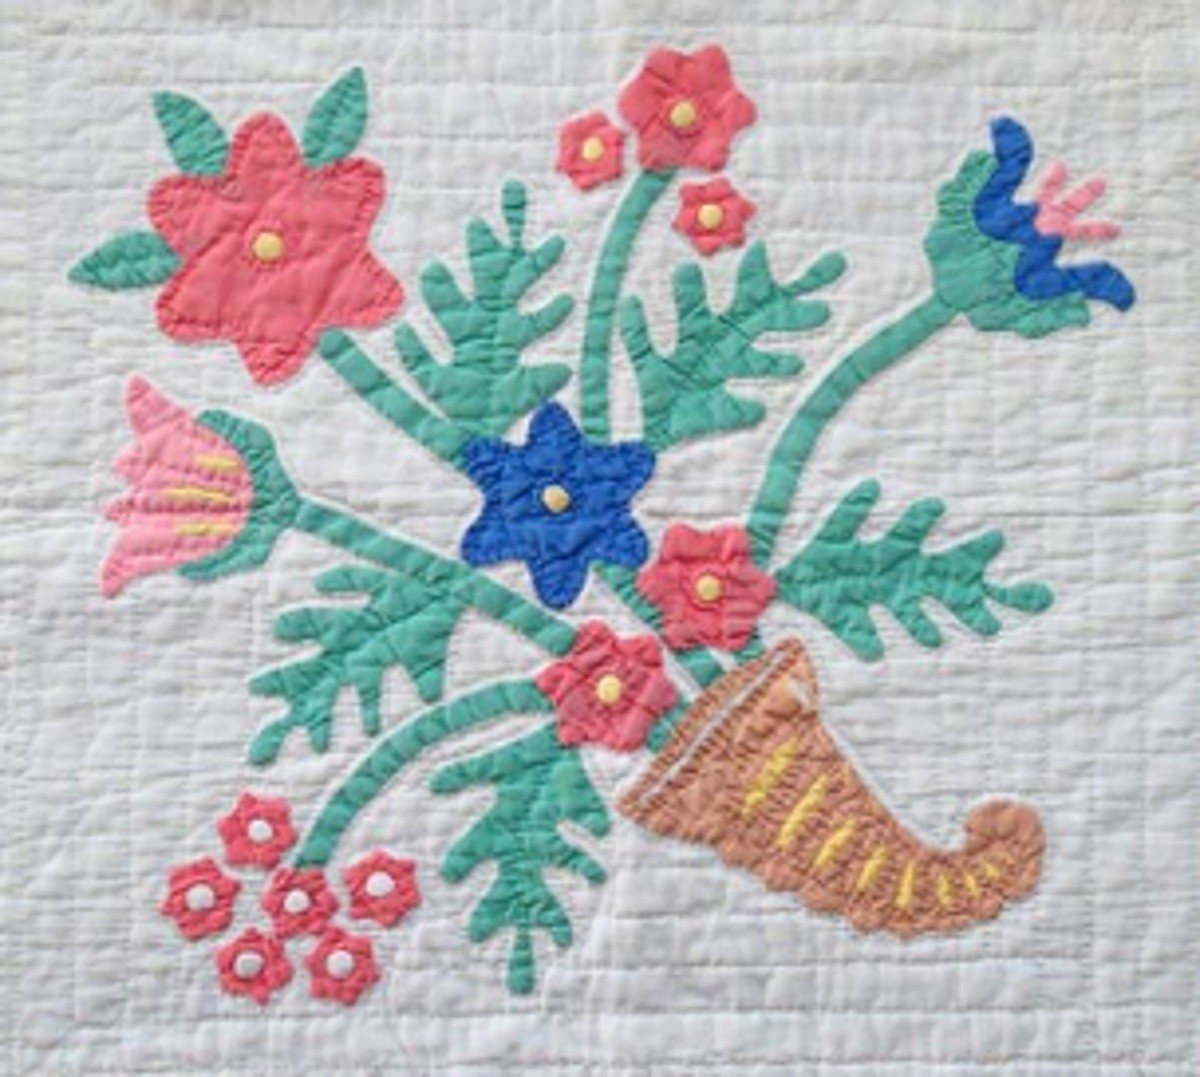 A Horn Of Plenty quilted applique